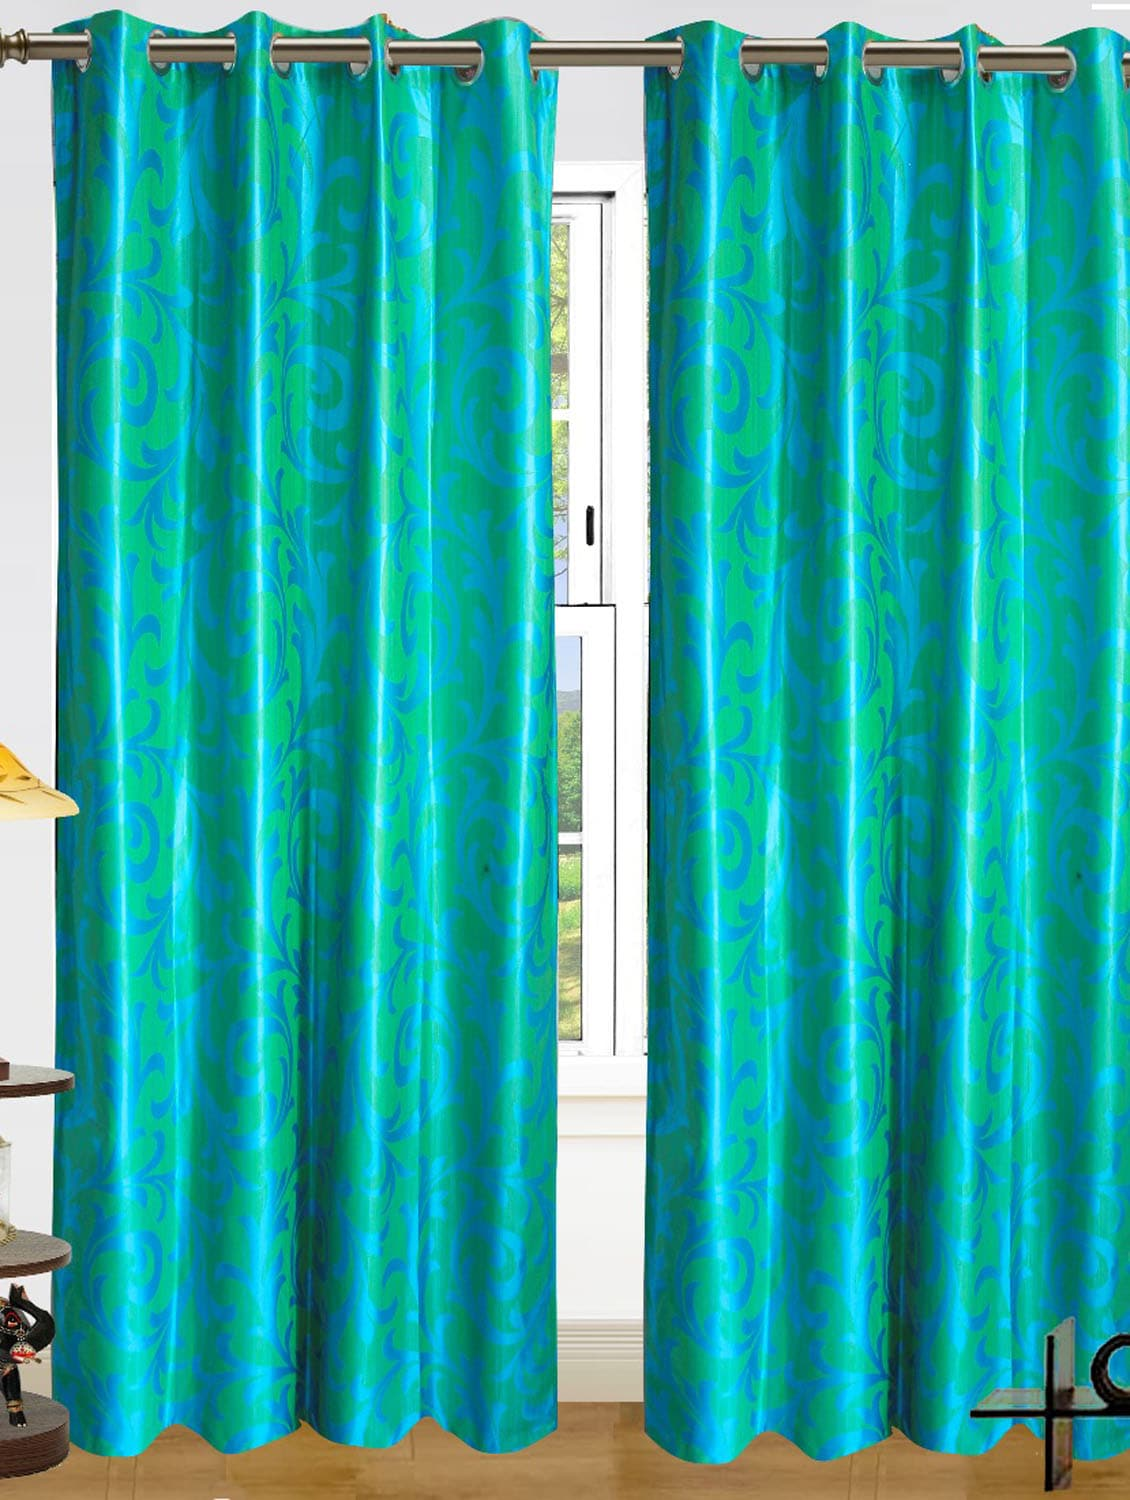 Buy Online Striking Sea Green Curtains From Home Decor For Unisex By Dekor World For 873 At 38 Off 2021 Limeroad Com